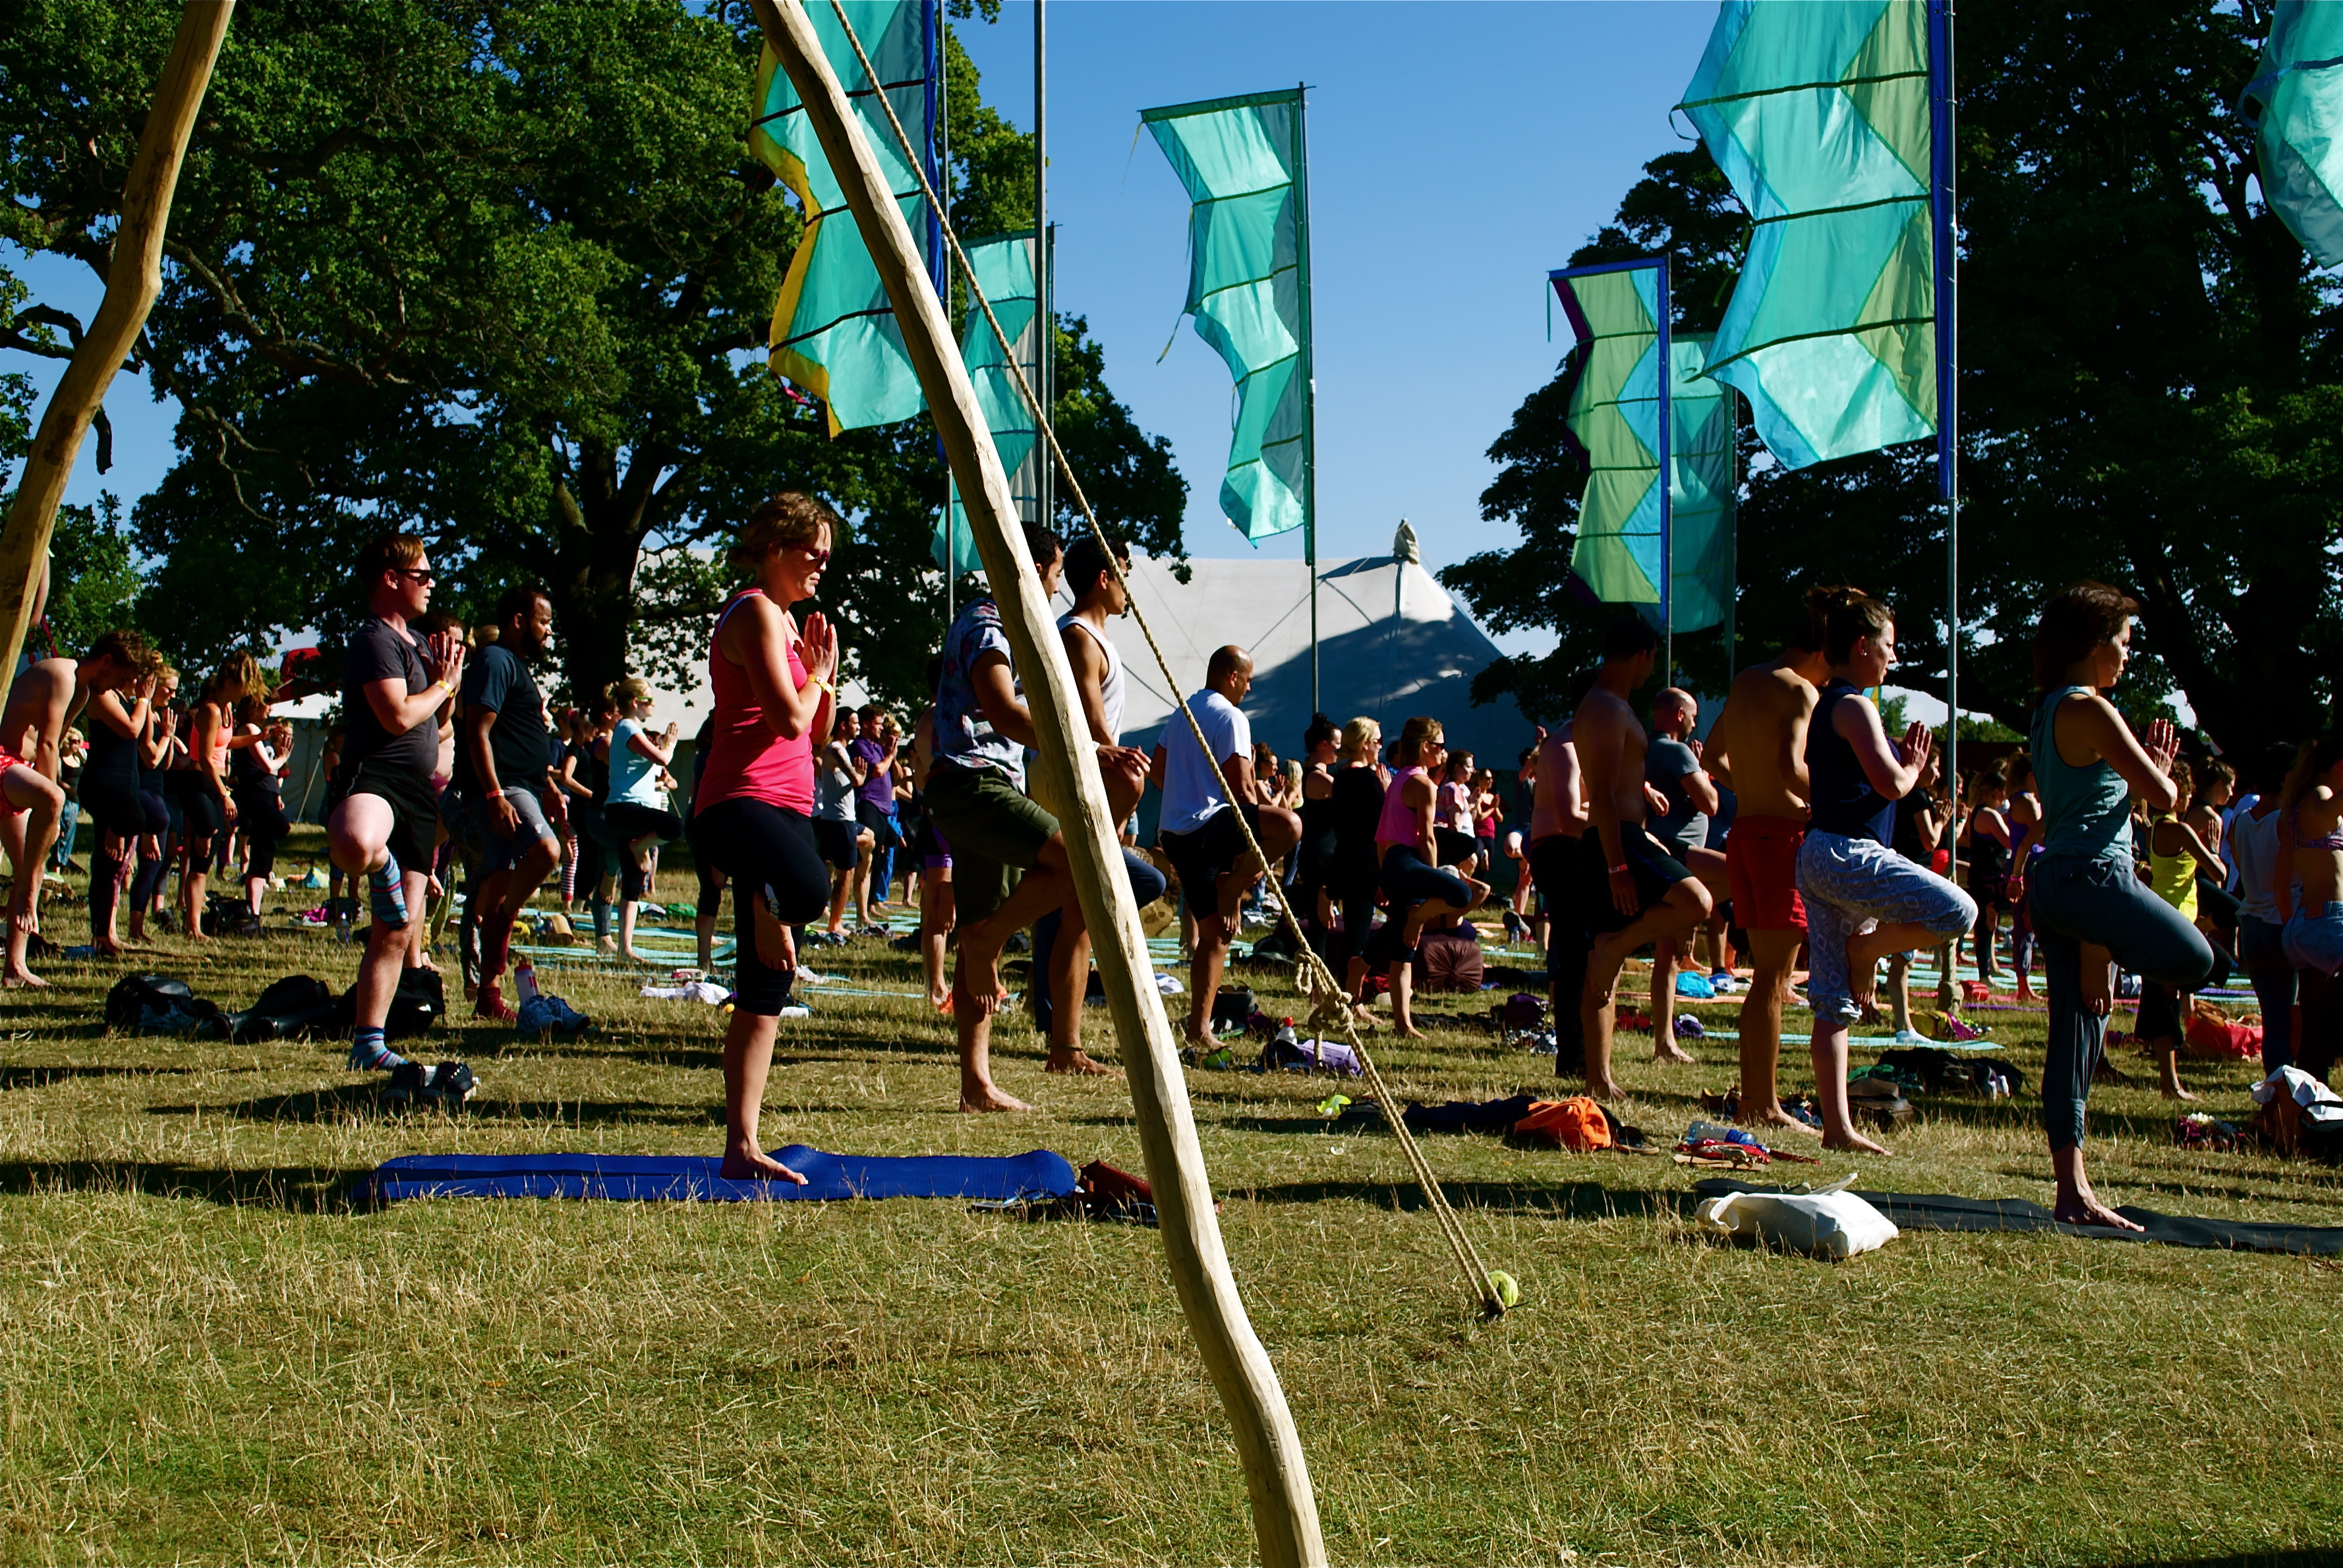 Pukka Herbs and Meditation at the Wilderness Festival